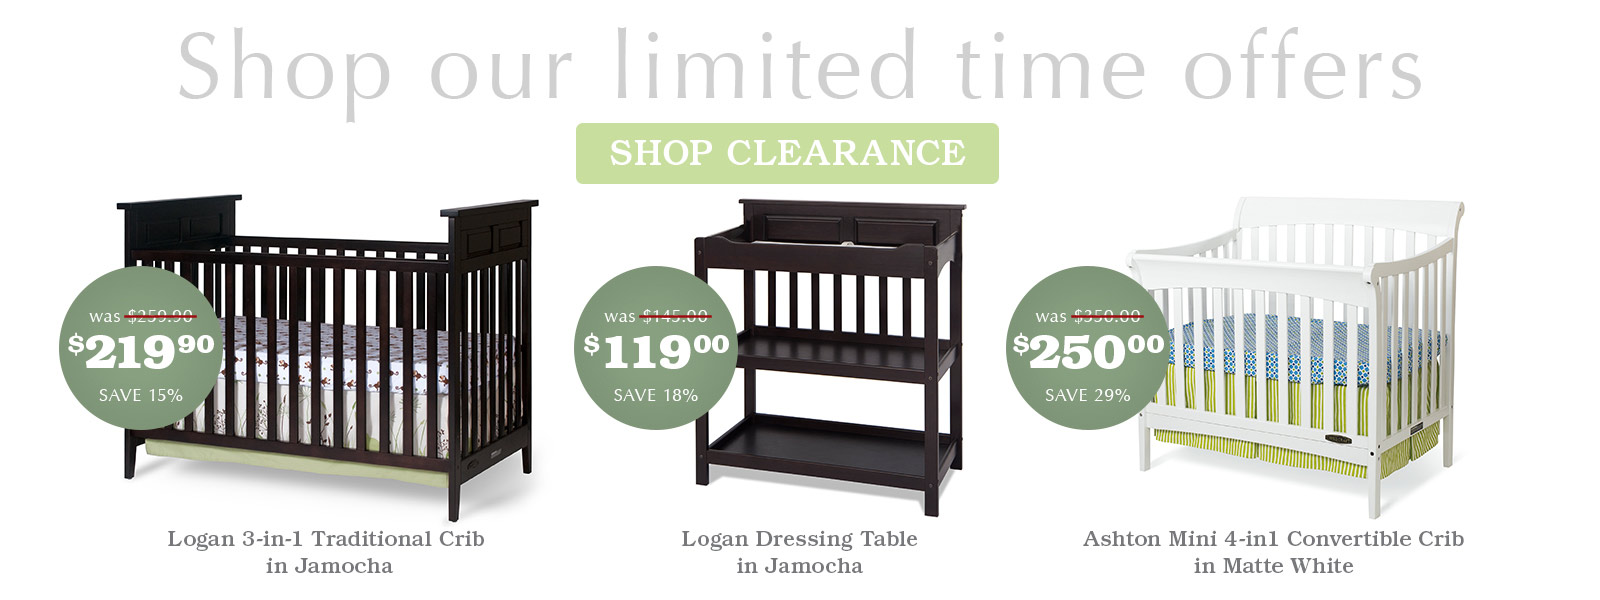 Shop our limited time clearance offers